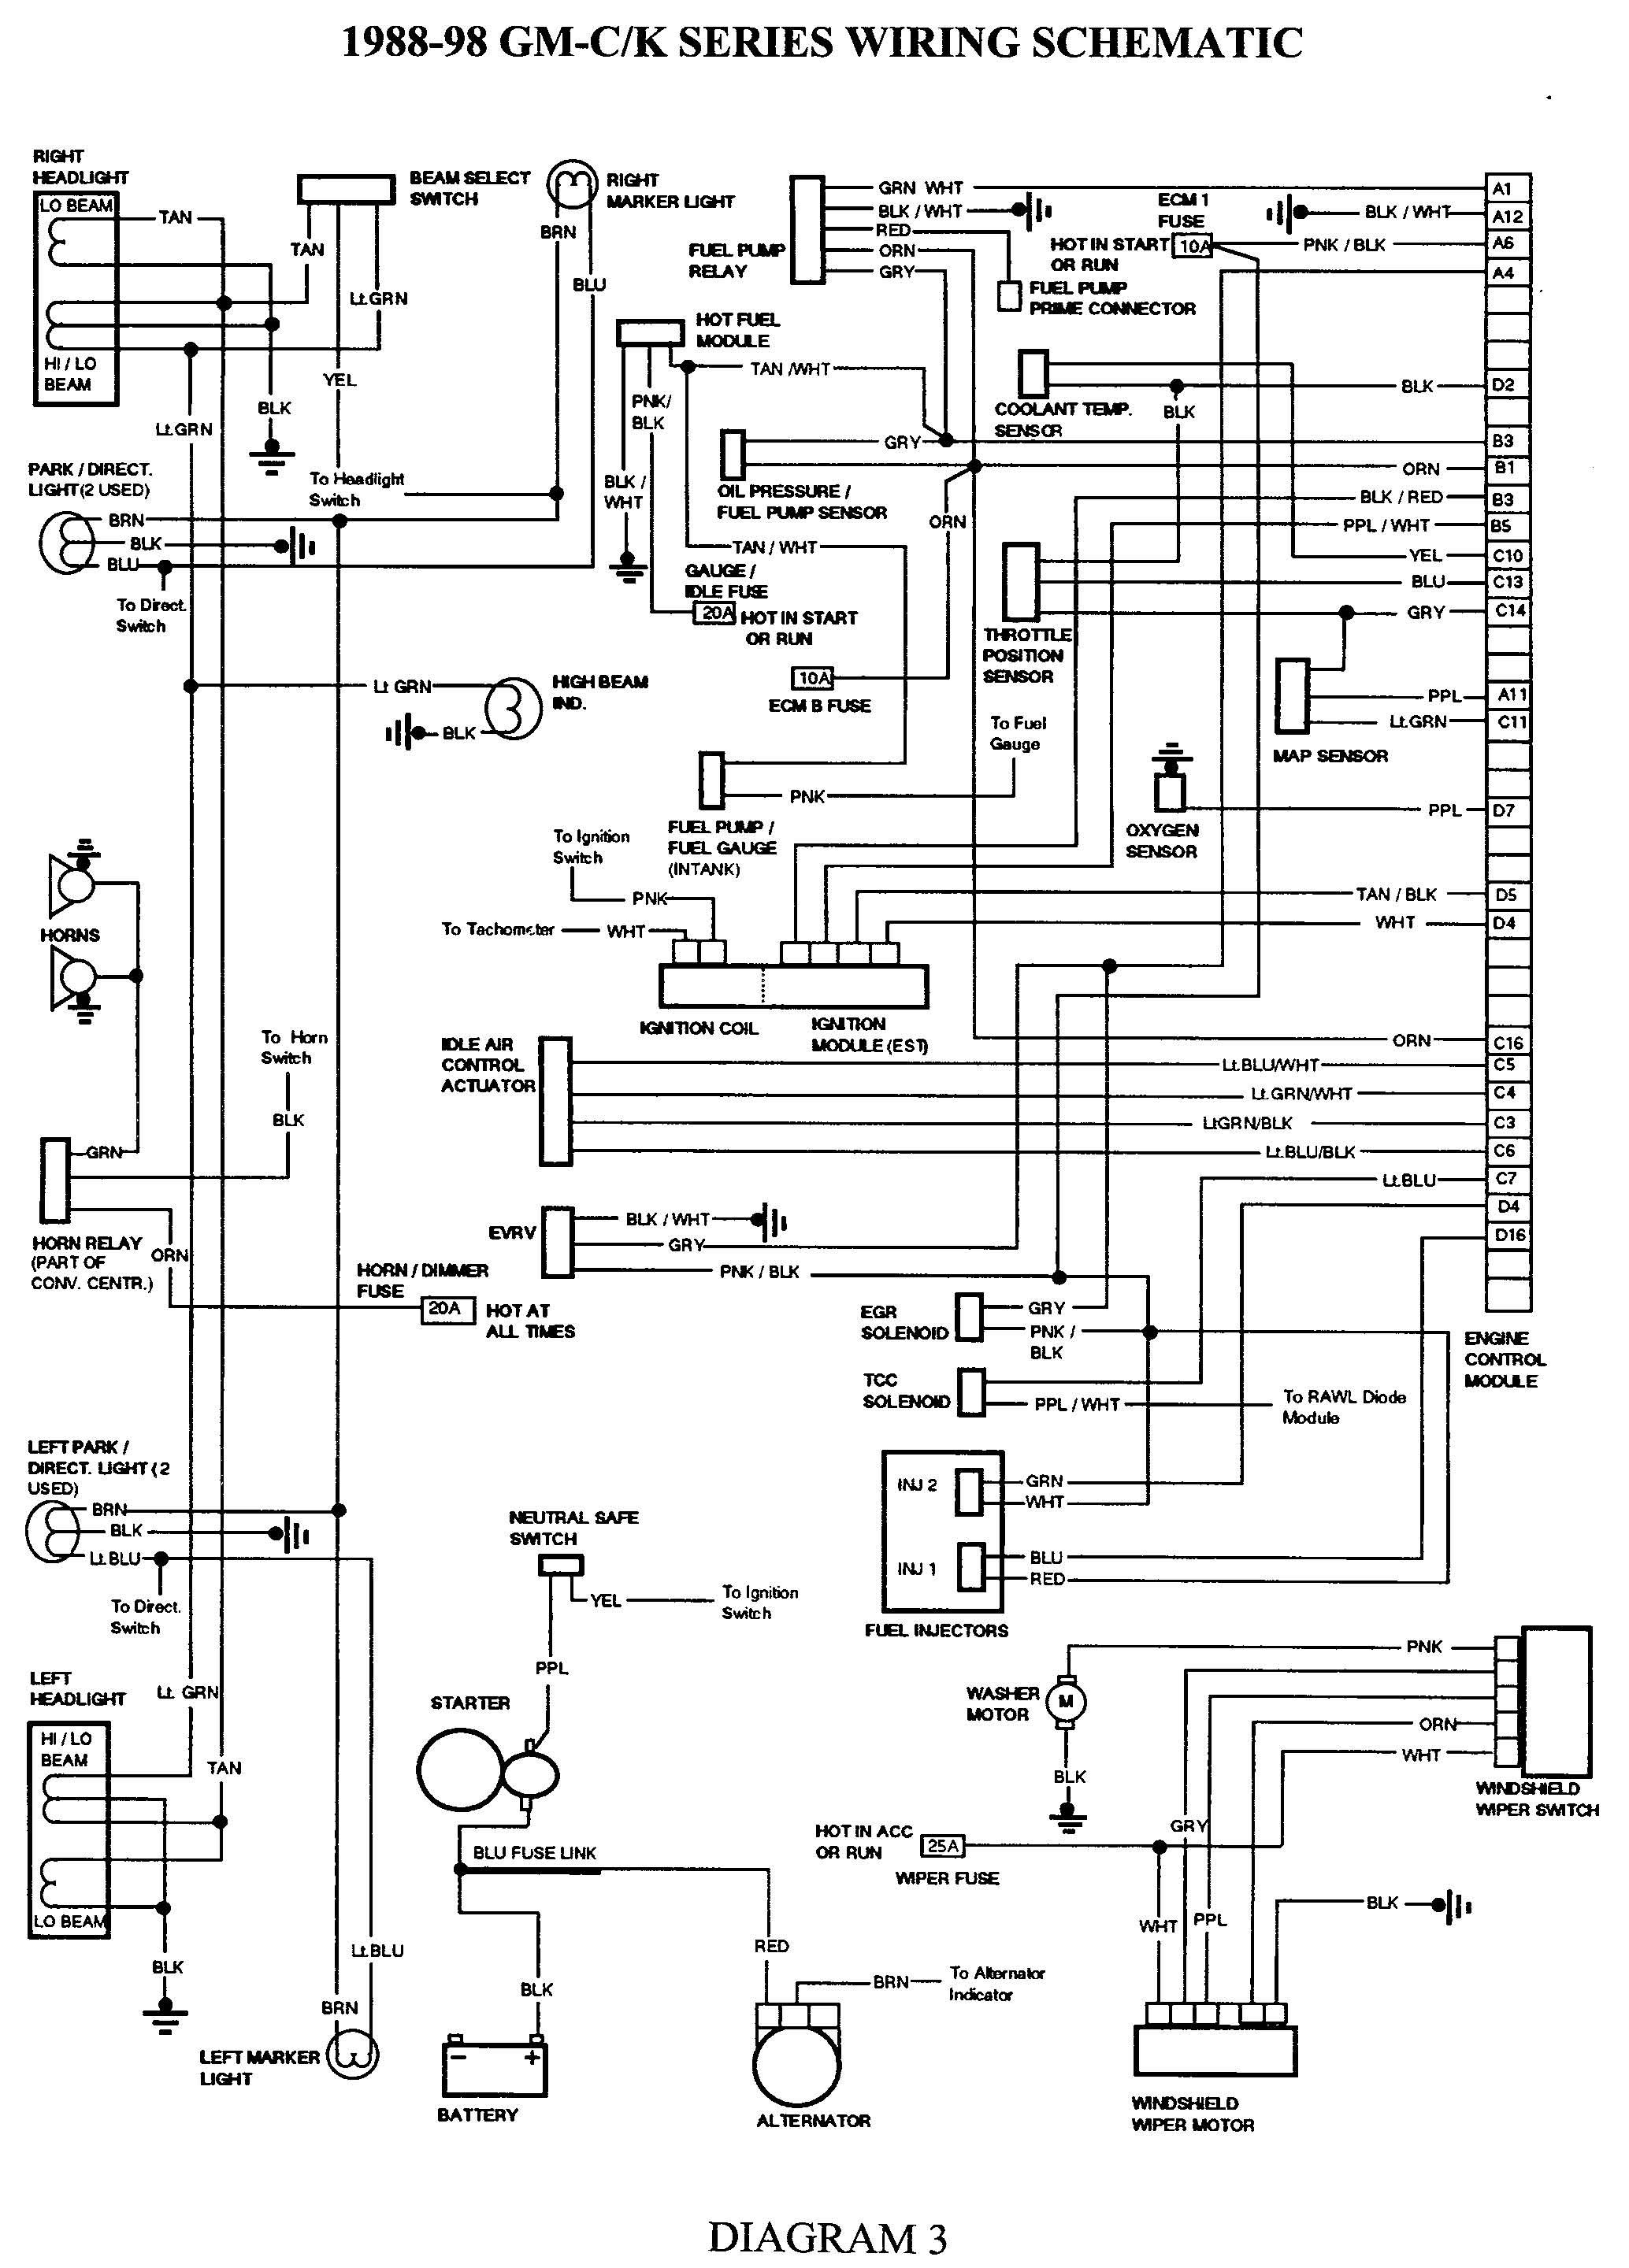 gmc truck wiring diagrams on gm wiring harness diagram 88 98 kc rh  pinterest com 1986 C20 350 Engine Wire Diagrams Chevy 350 Engine Diagram